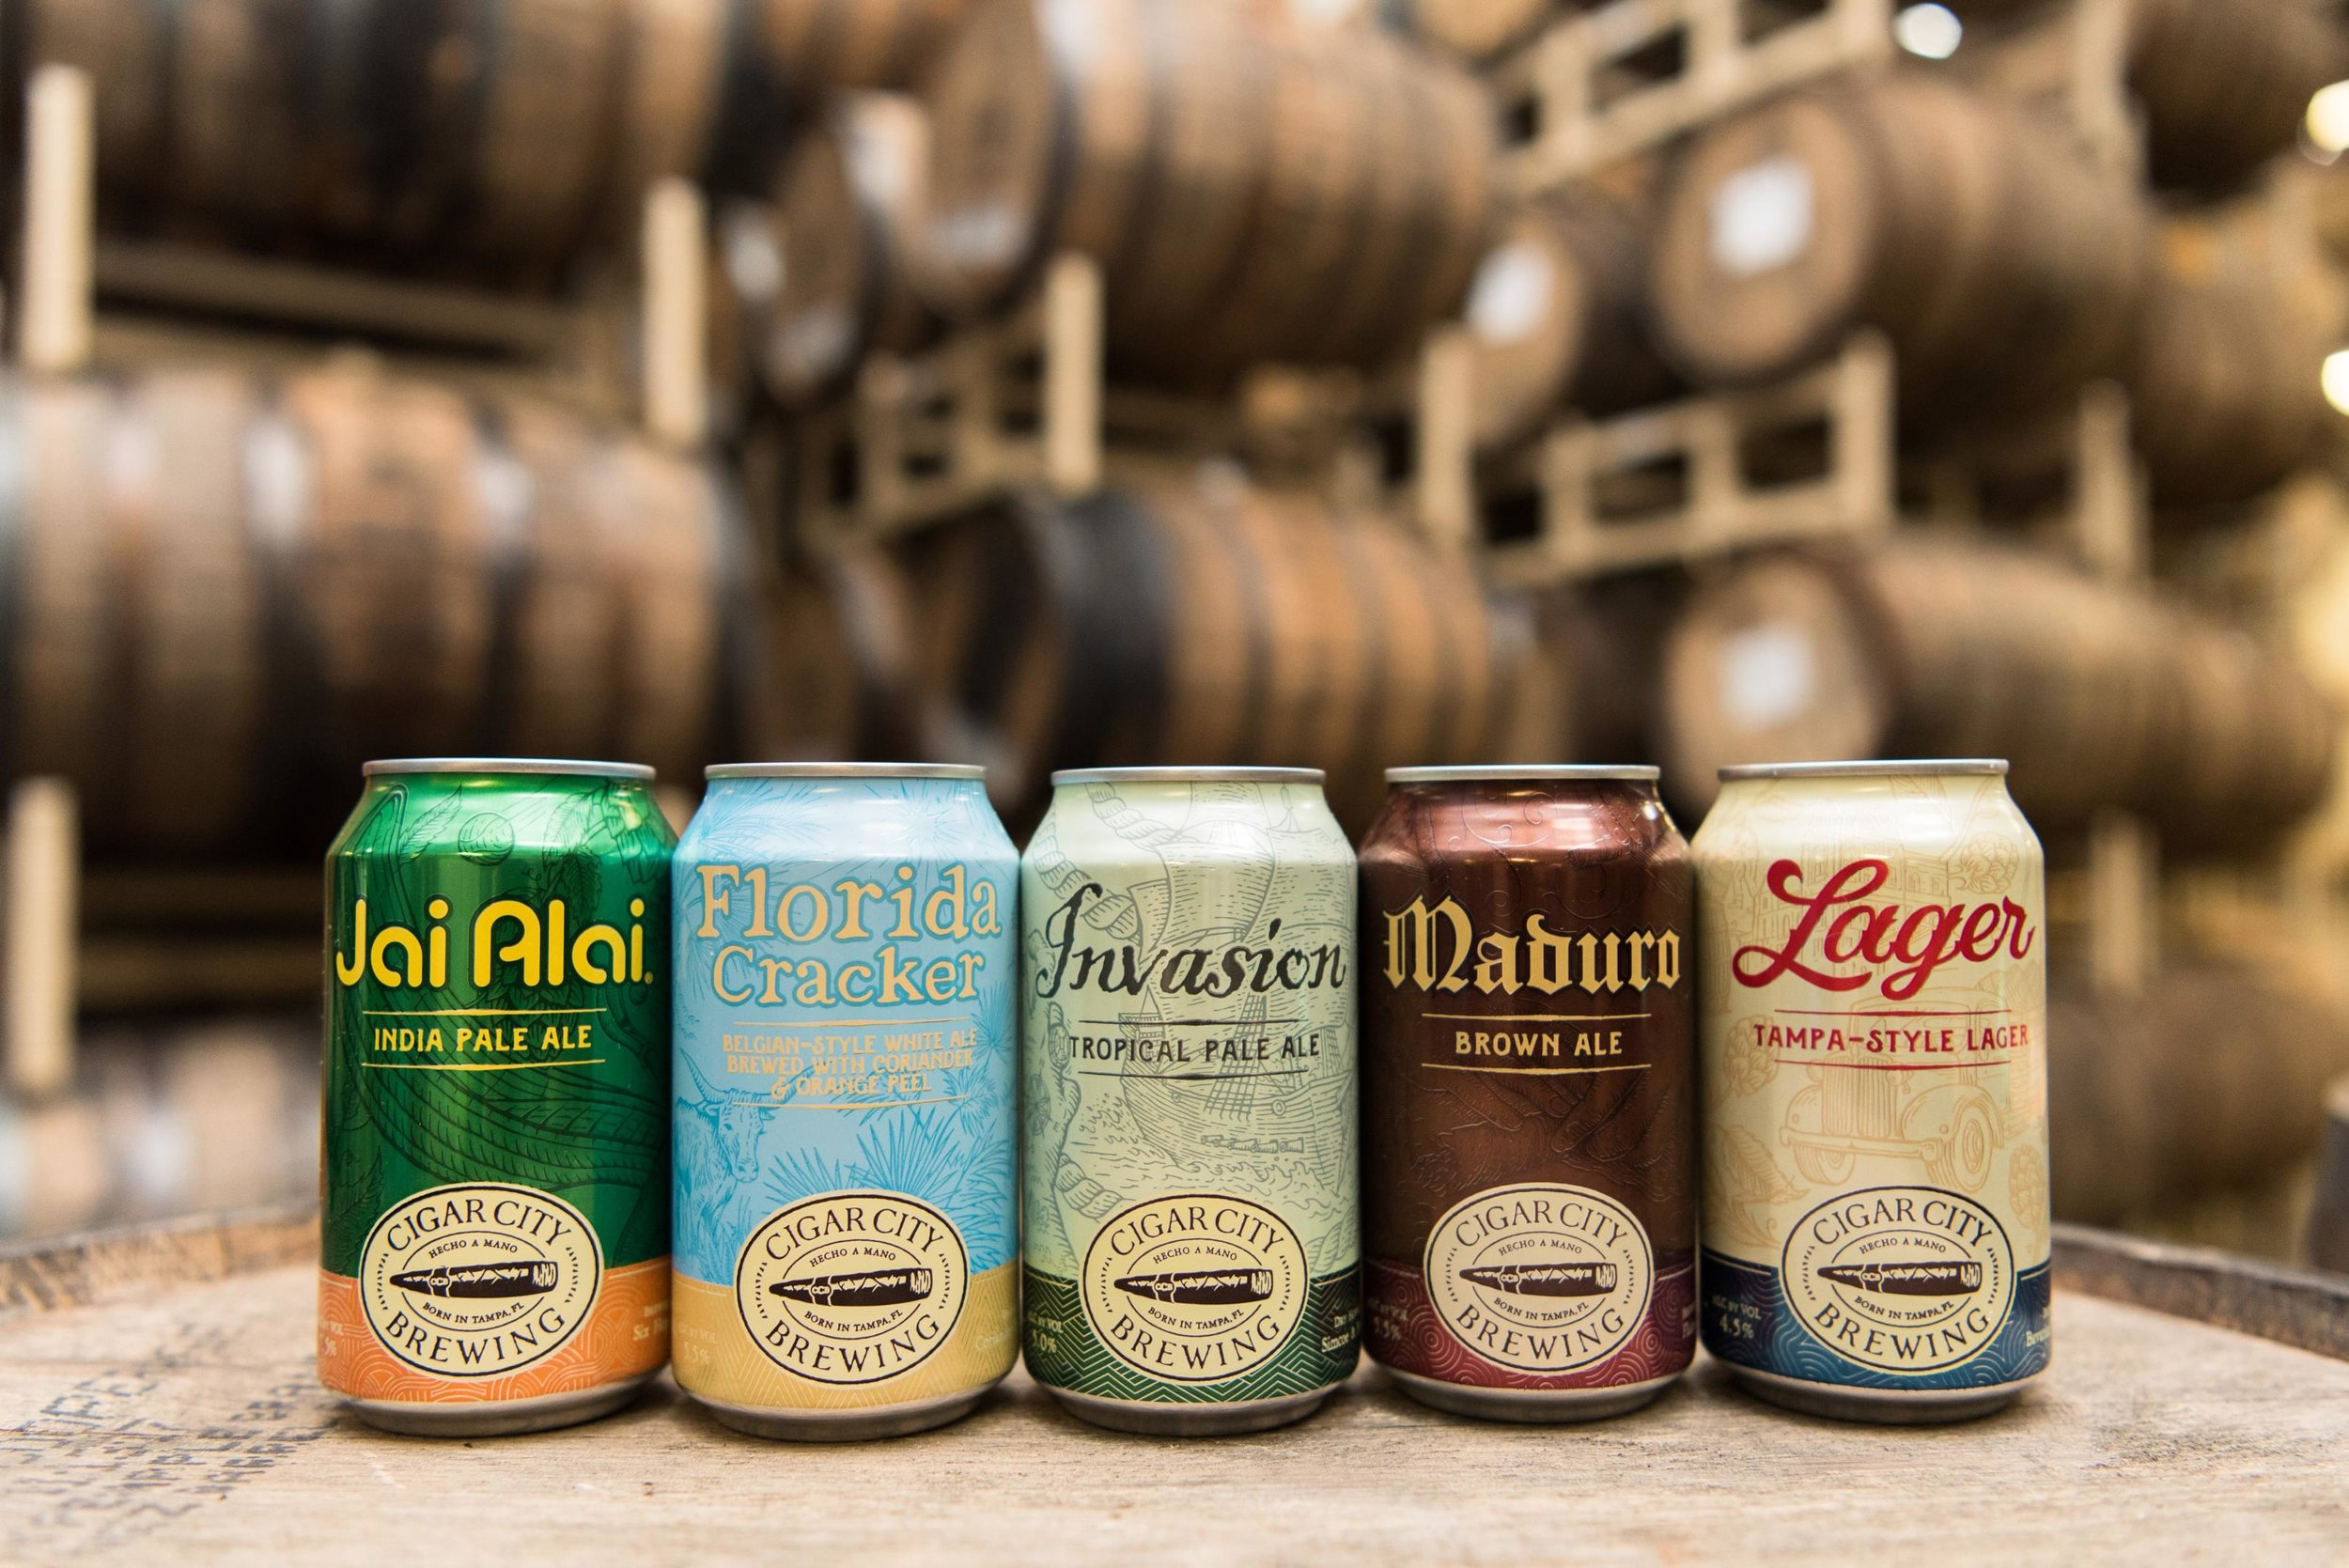 Photo Source: https://thefullpint.com/beer-news/cigar-city-brewing-expands-distribution-to-minnesota/